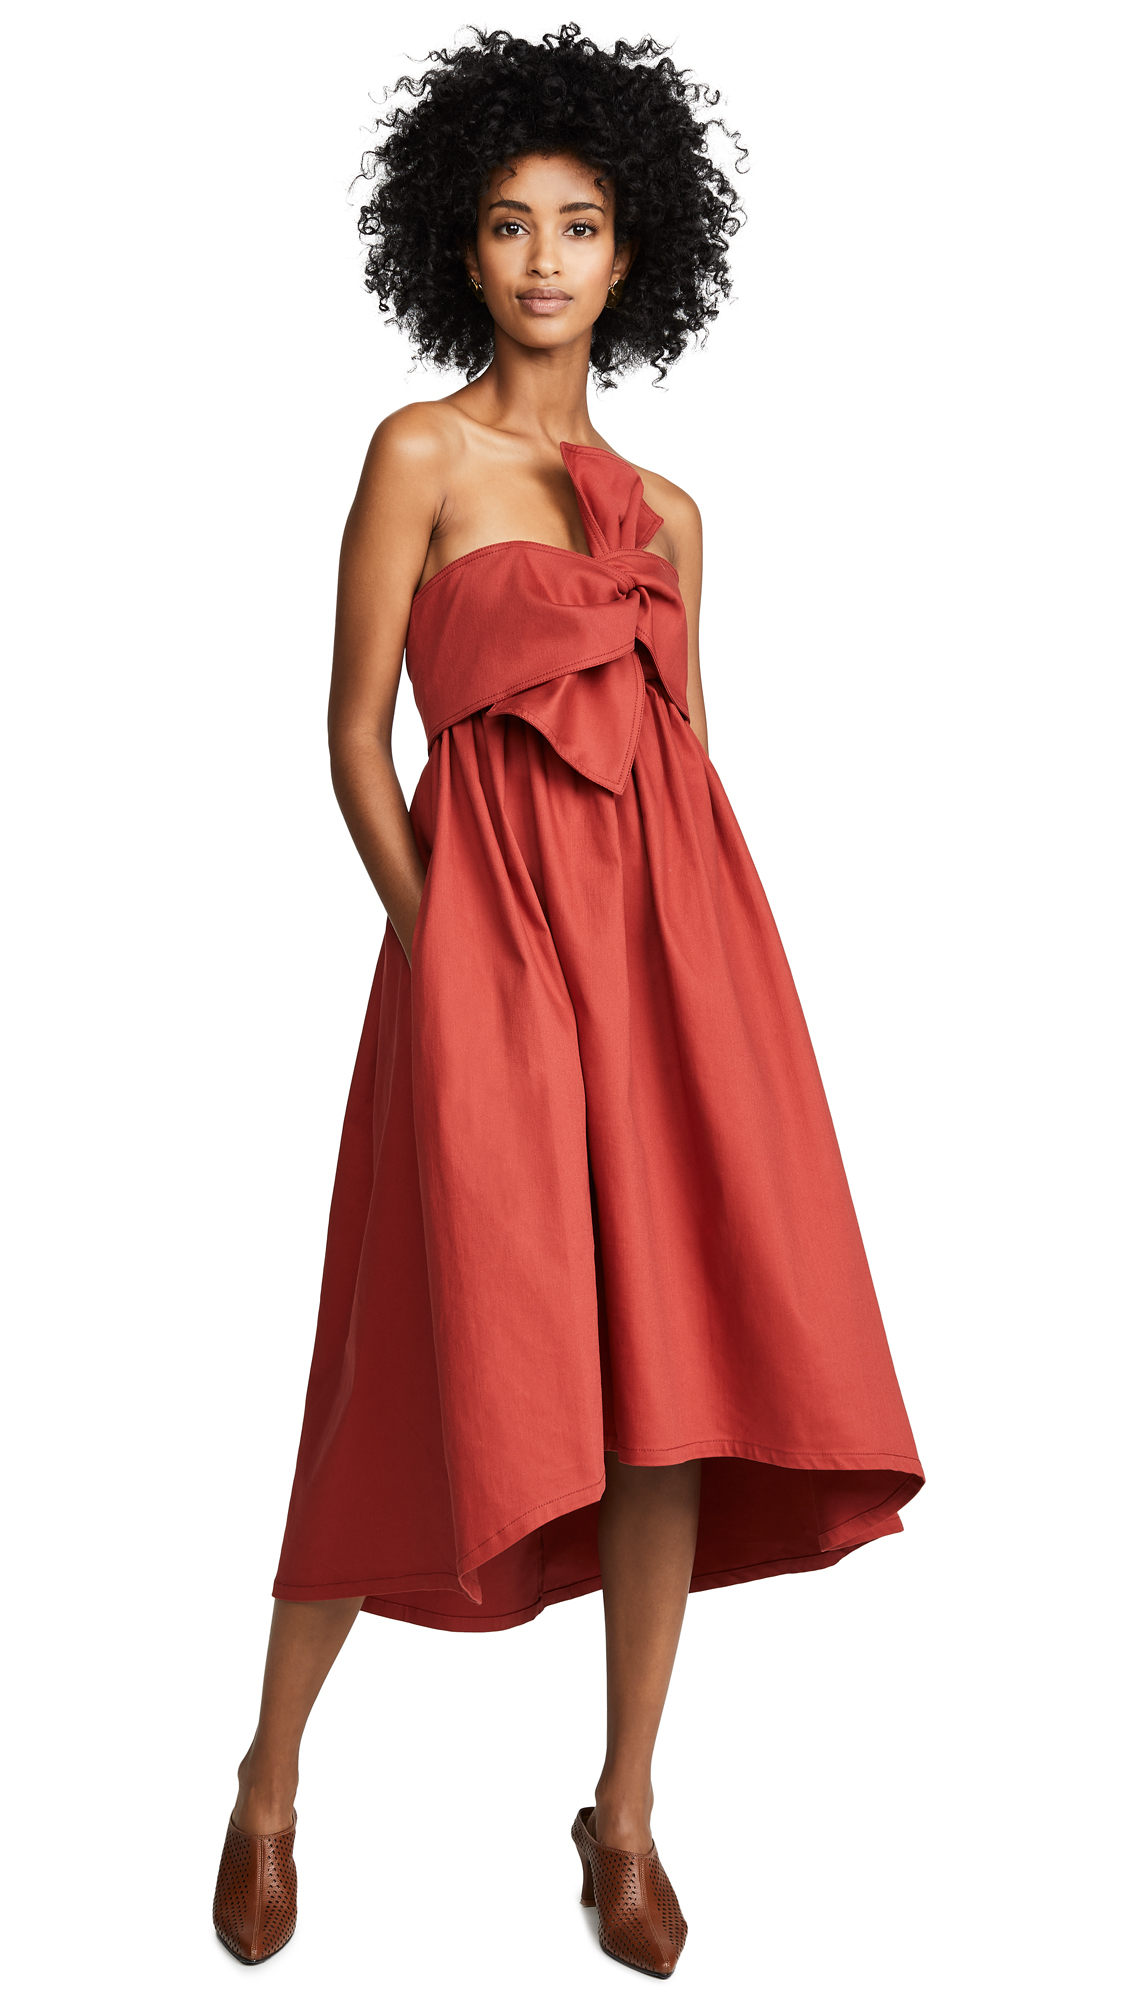 Ulla Johnson Rochelle Dress - Ochre